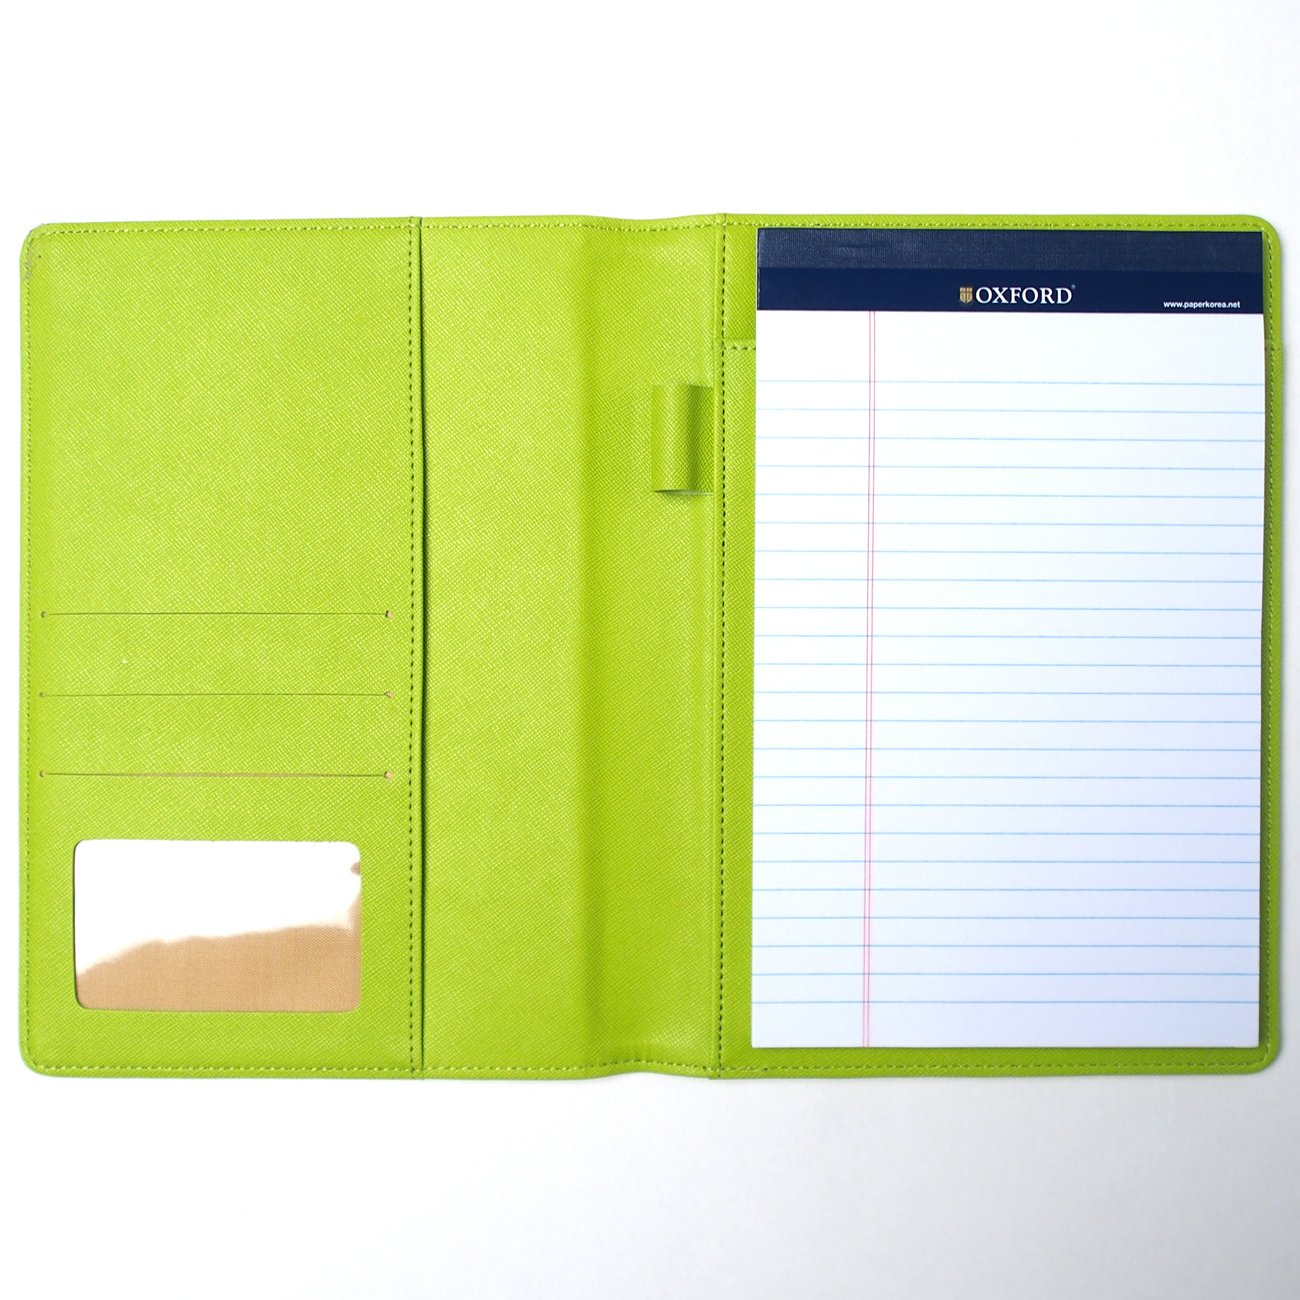 AHZOA Colorful 4 Pockets A5 Size Memo Padfolio S1, Including 5 X 8 inch Legal Writing Pad, Synthetic Leather Handmade About 6.3 X 8.7 inch Folder Clipboard Holder (Green)